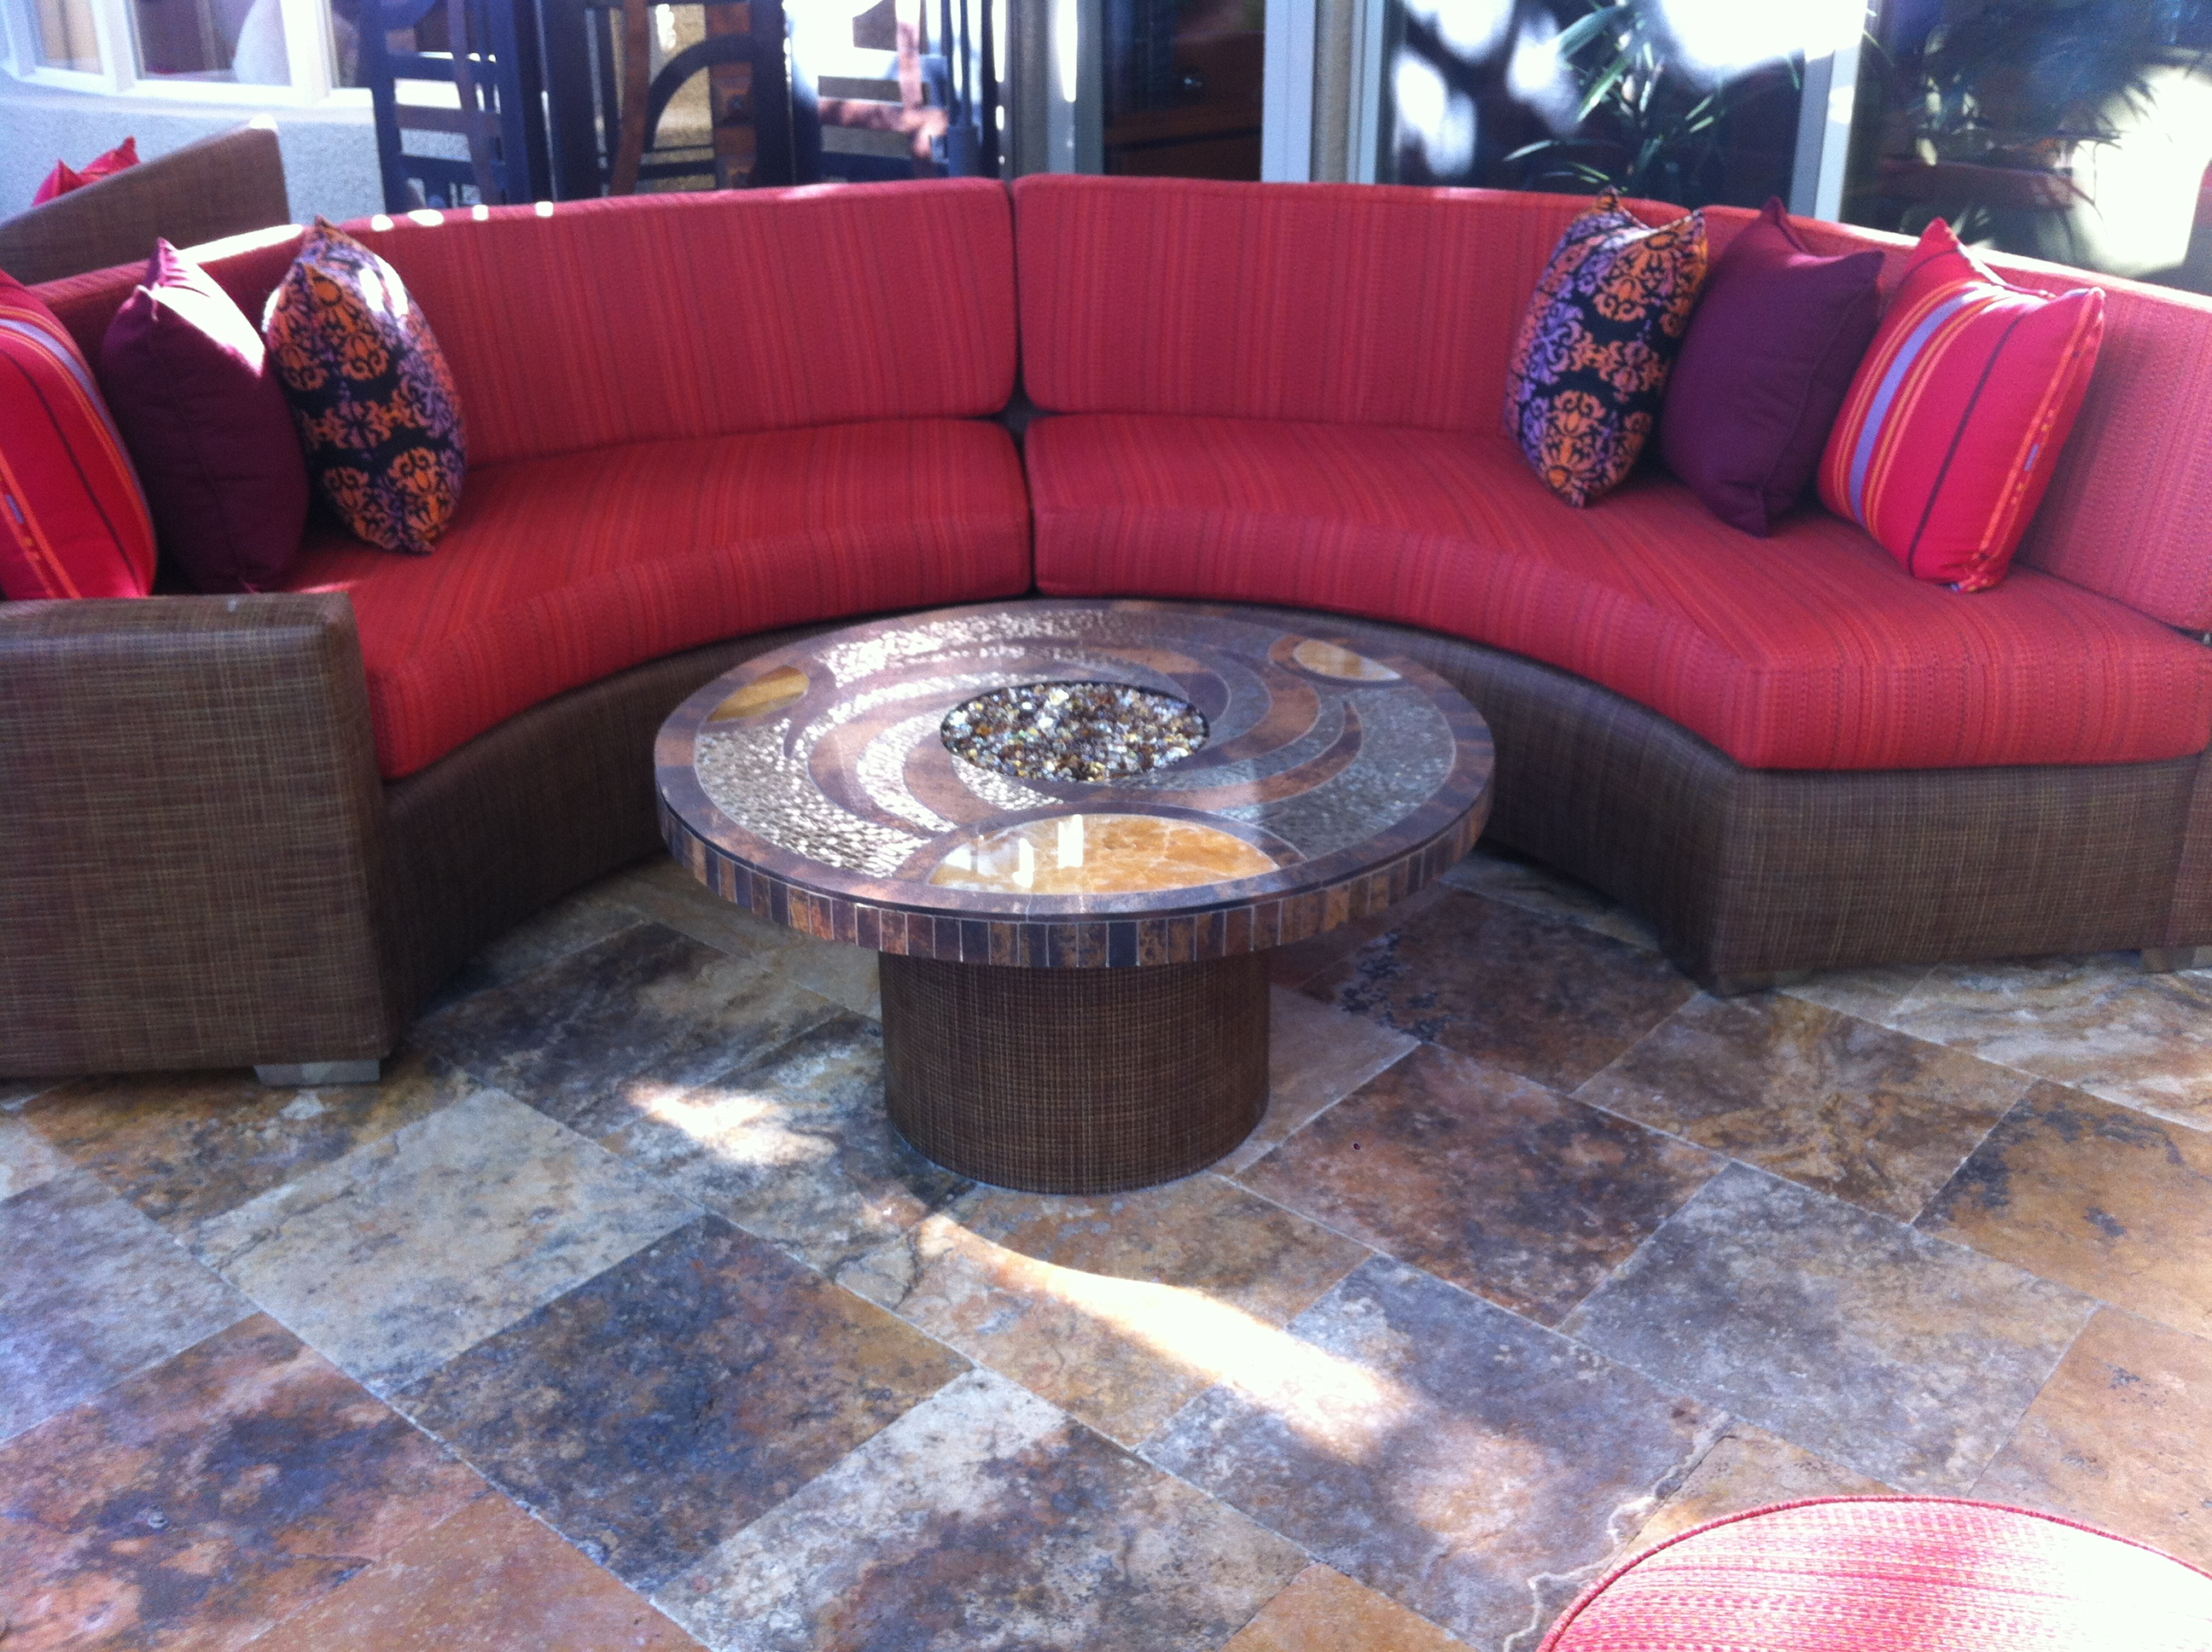 Outdoor Furniture Design and Manufacturing Las Vegas